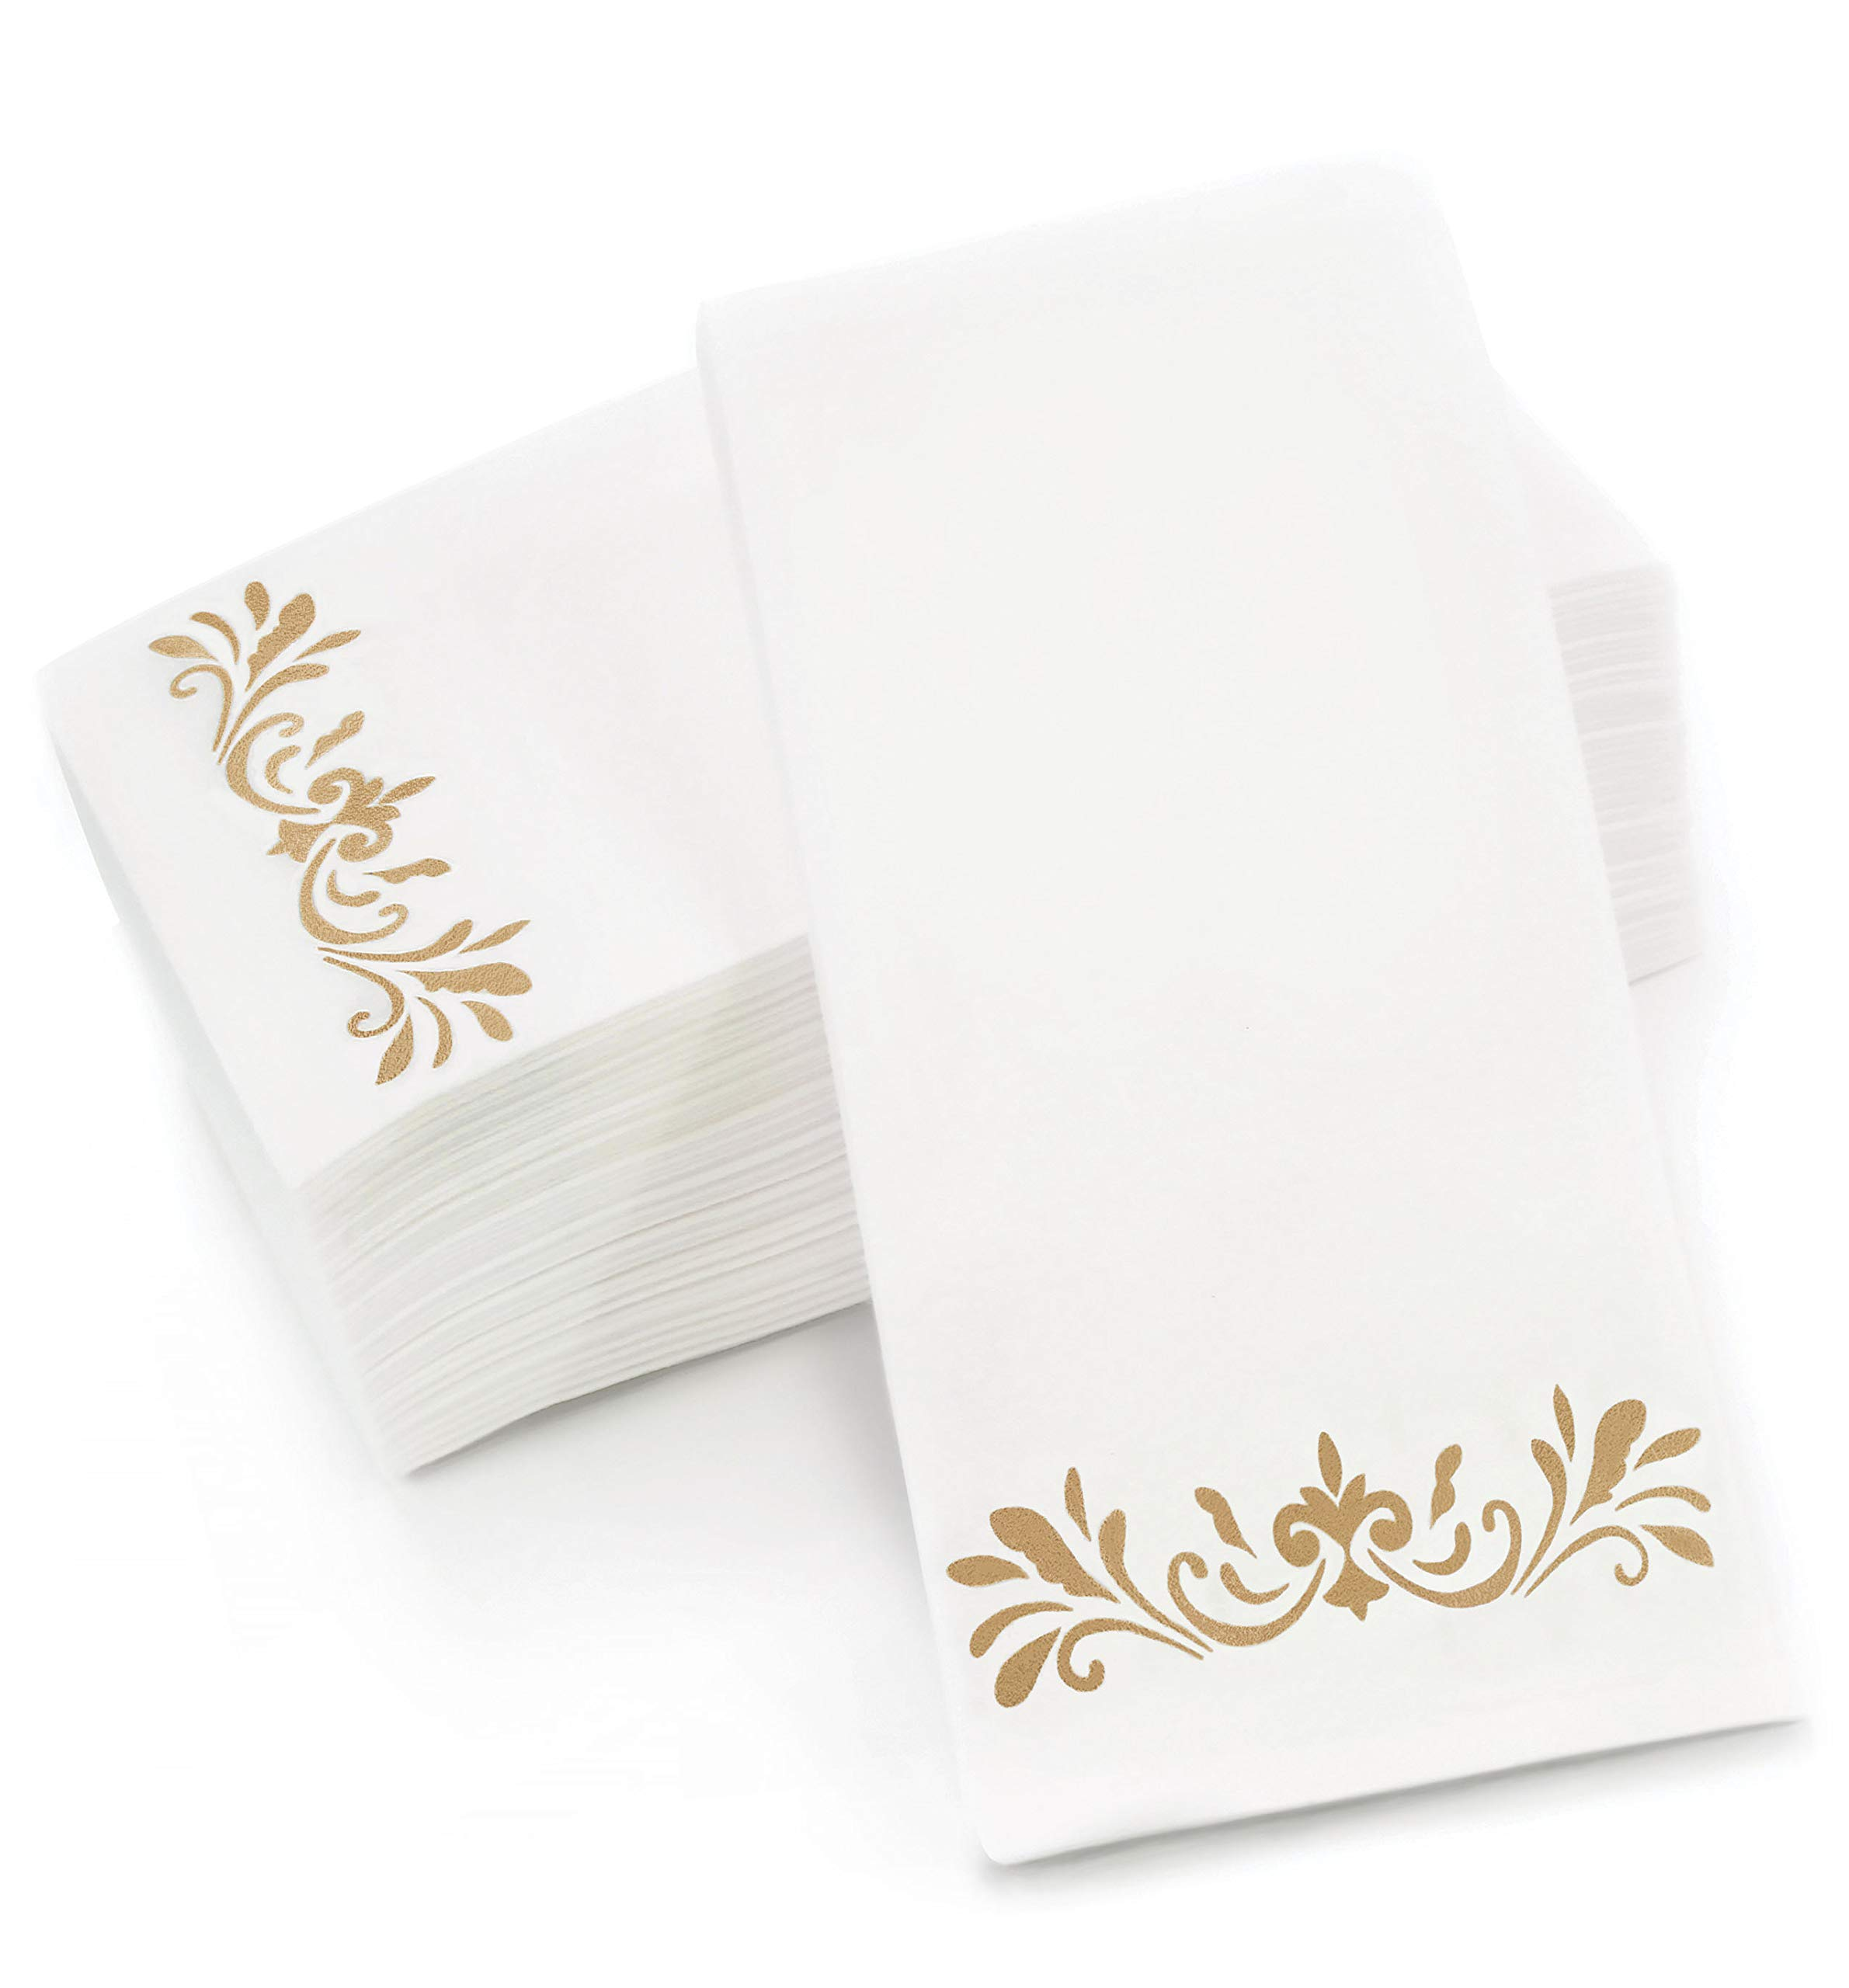 CAVEPOP Gold Dinner Napkins, Disposable Party Napkins, Paper Napkins Decorative, Linen Feel Disposable Hand Towels for Wedding, Guest Bathroom & More - White with Gold, 100 Pack, 8.25 x 4 Inches